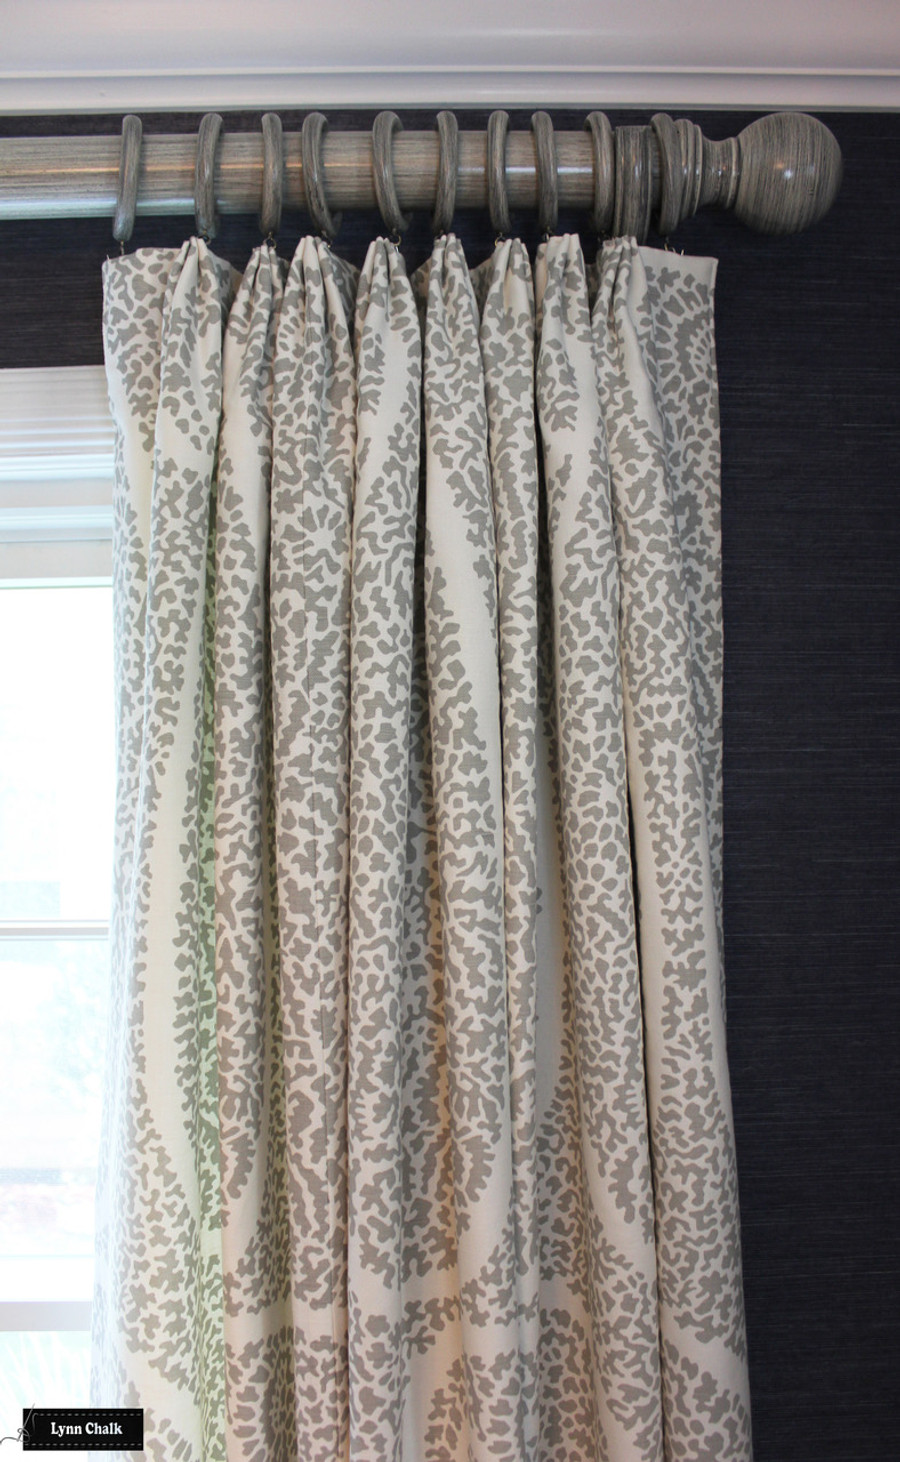 Schumacher Ambala Paisley Custom Drapes (comes in 4 colors)